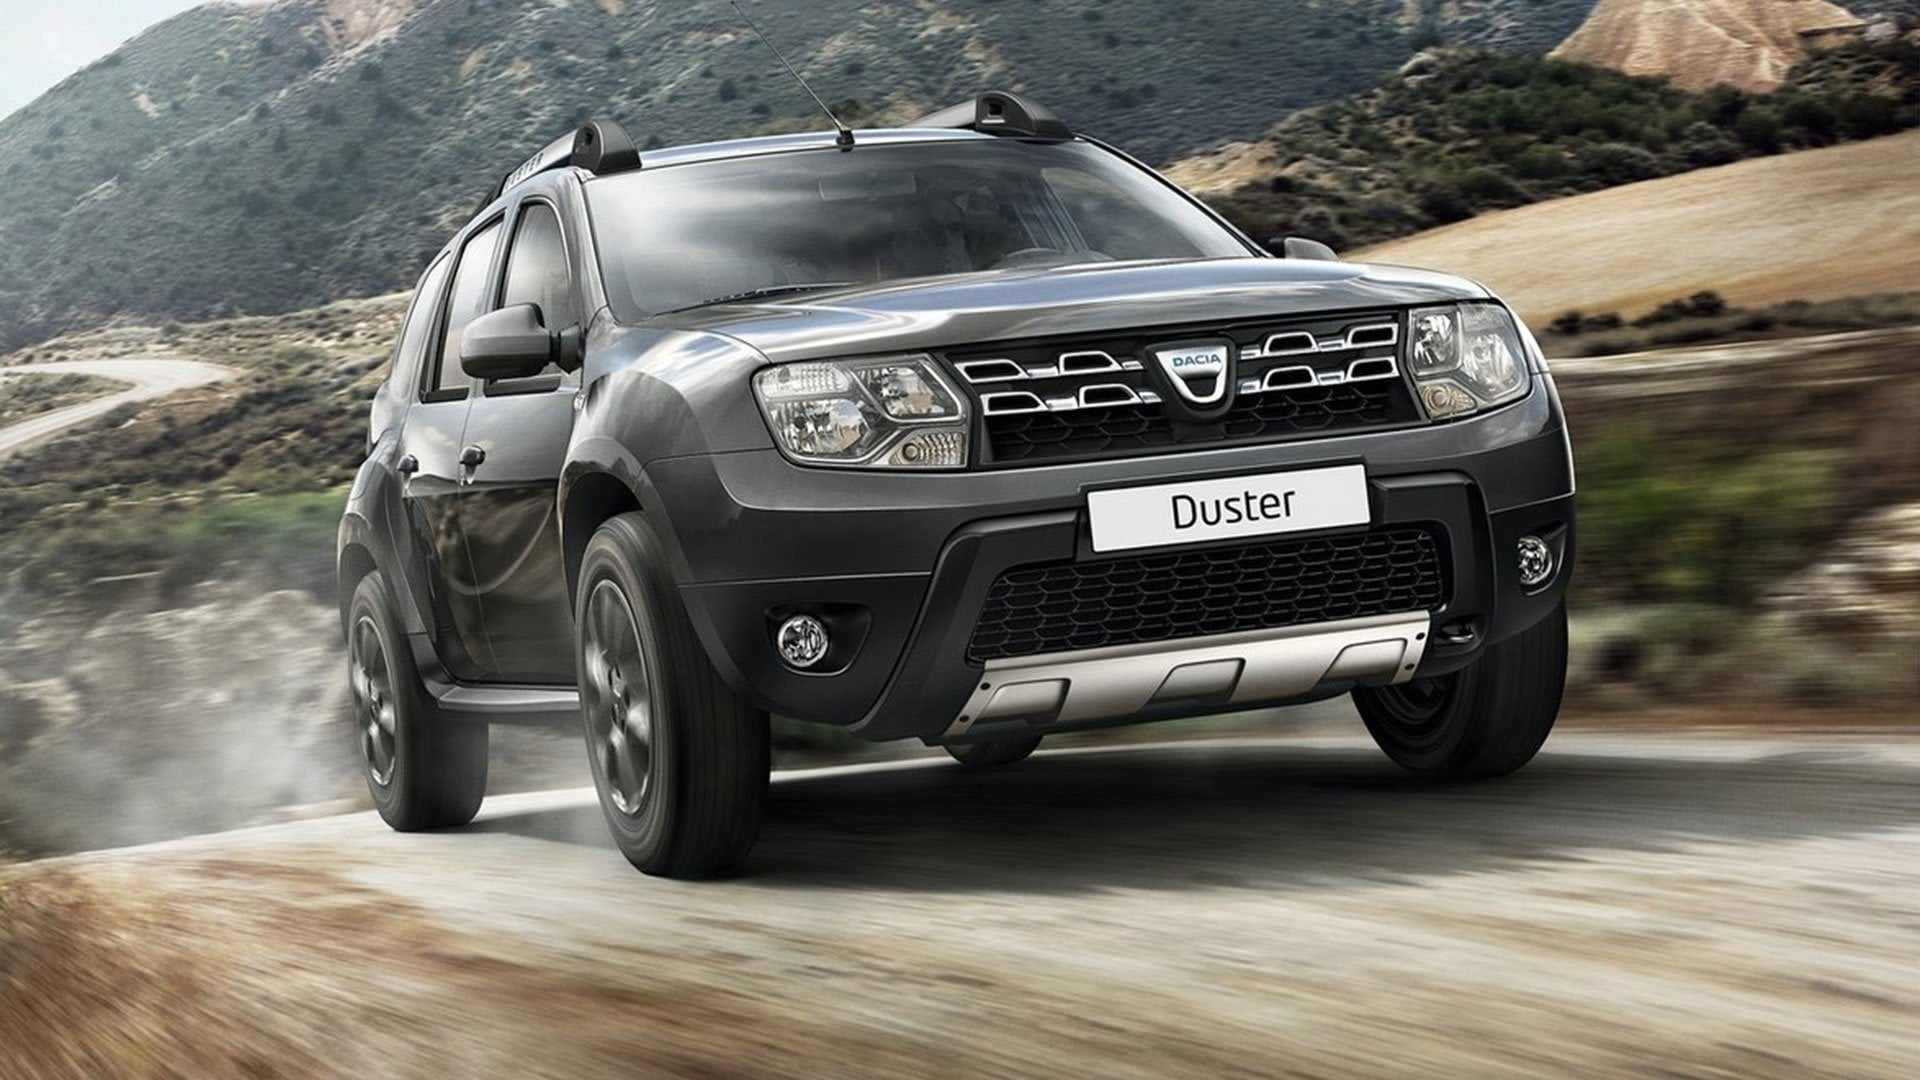 french car market down 12 in february dacia duster up in 5th place focus2move. Black Bedroom Furniture Sets. Home Design Ideas